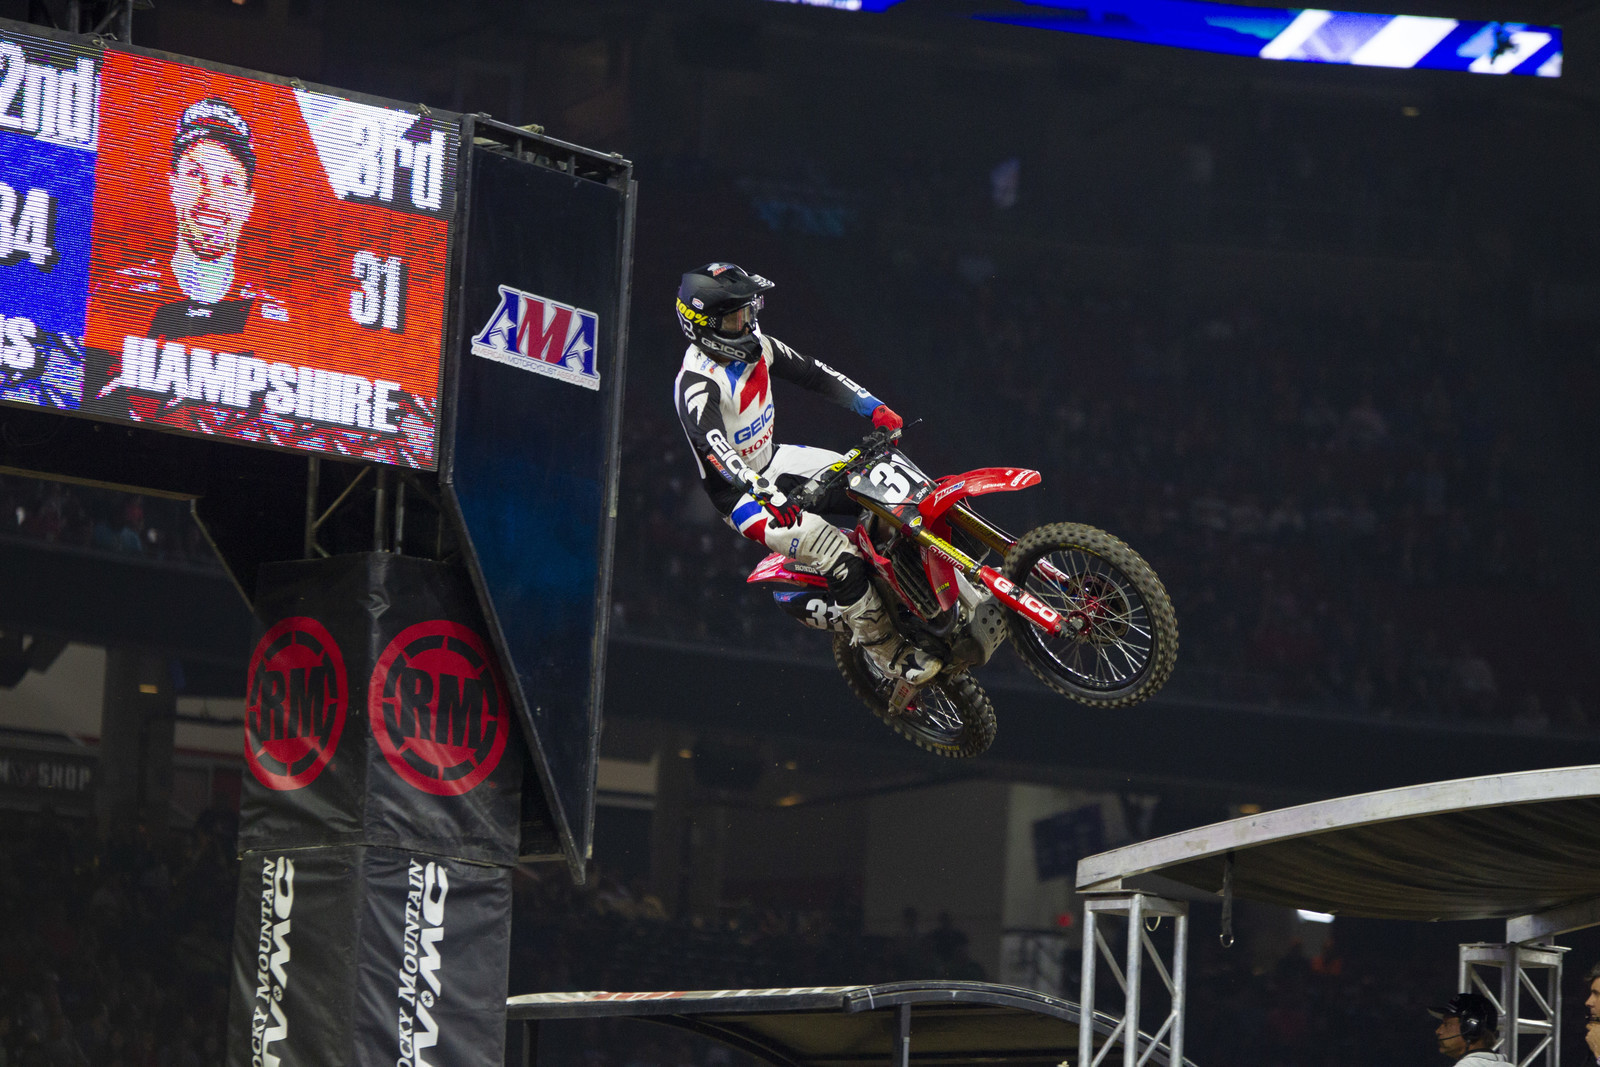 2019 Houston Supercross.